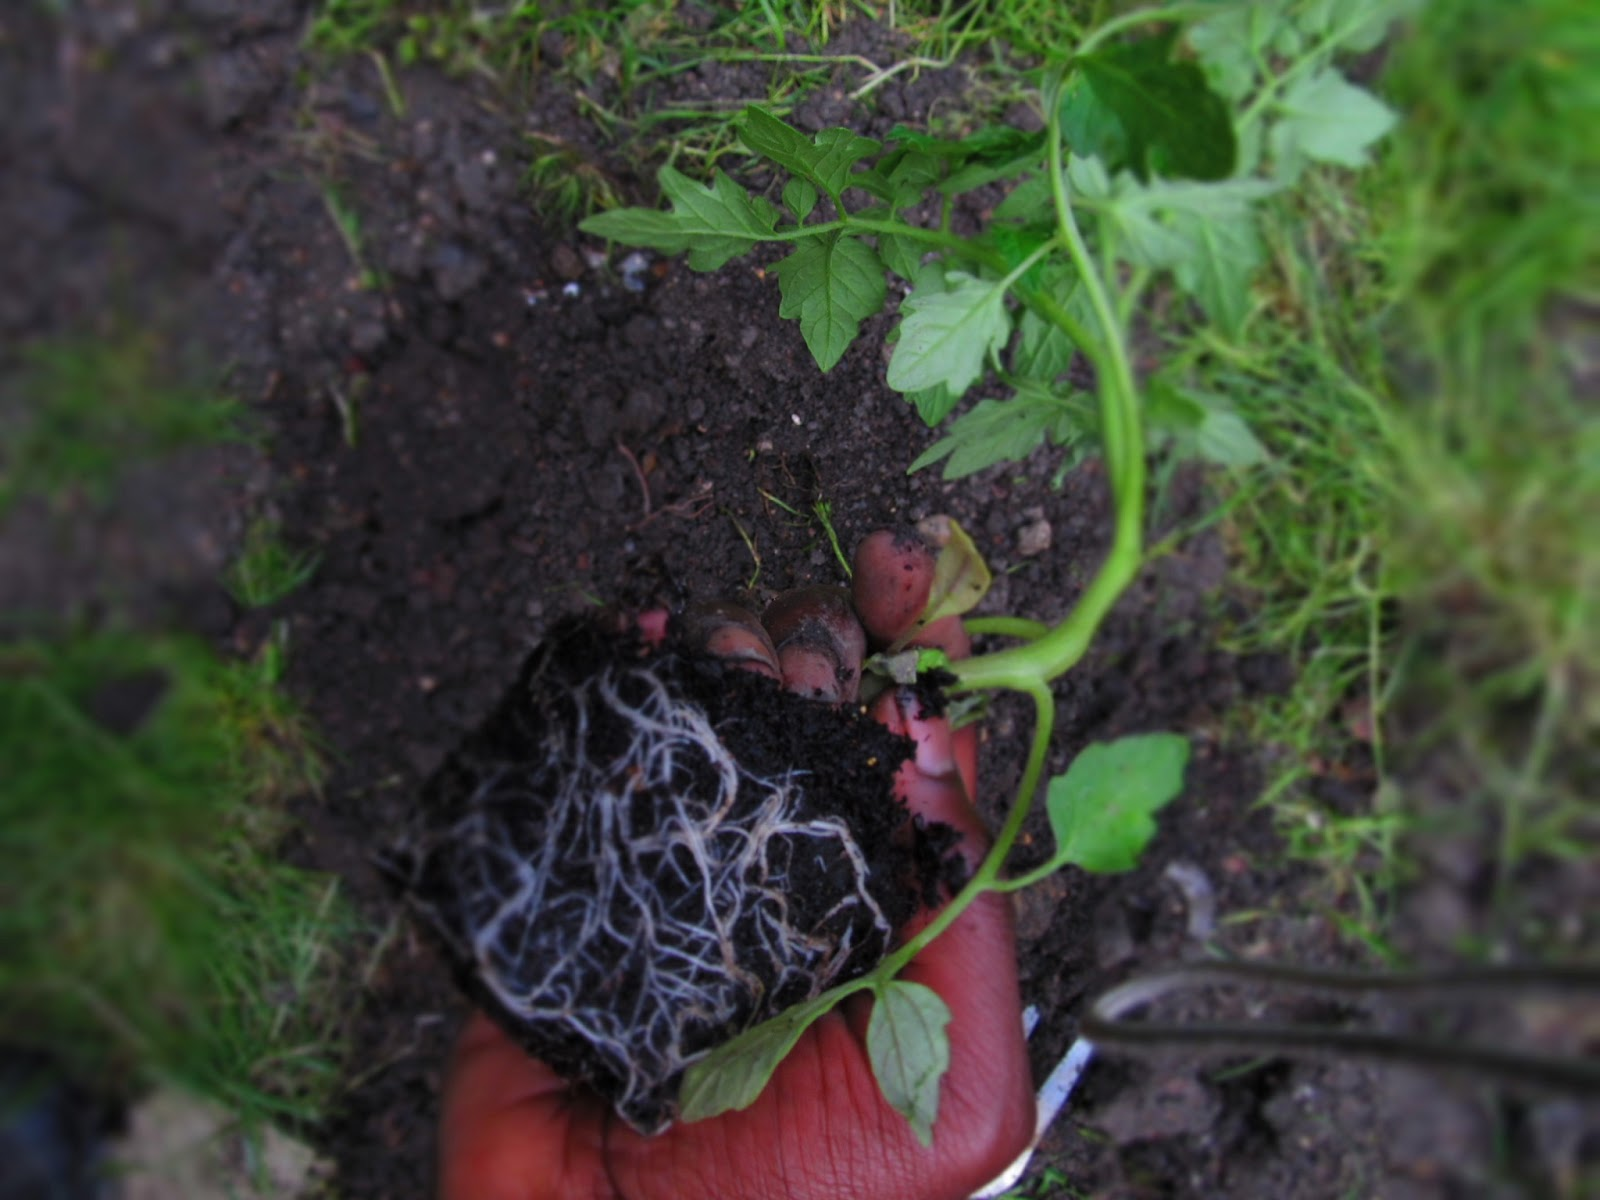 Glory charles gardening soil sun and food for Soil 7 days to die